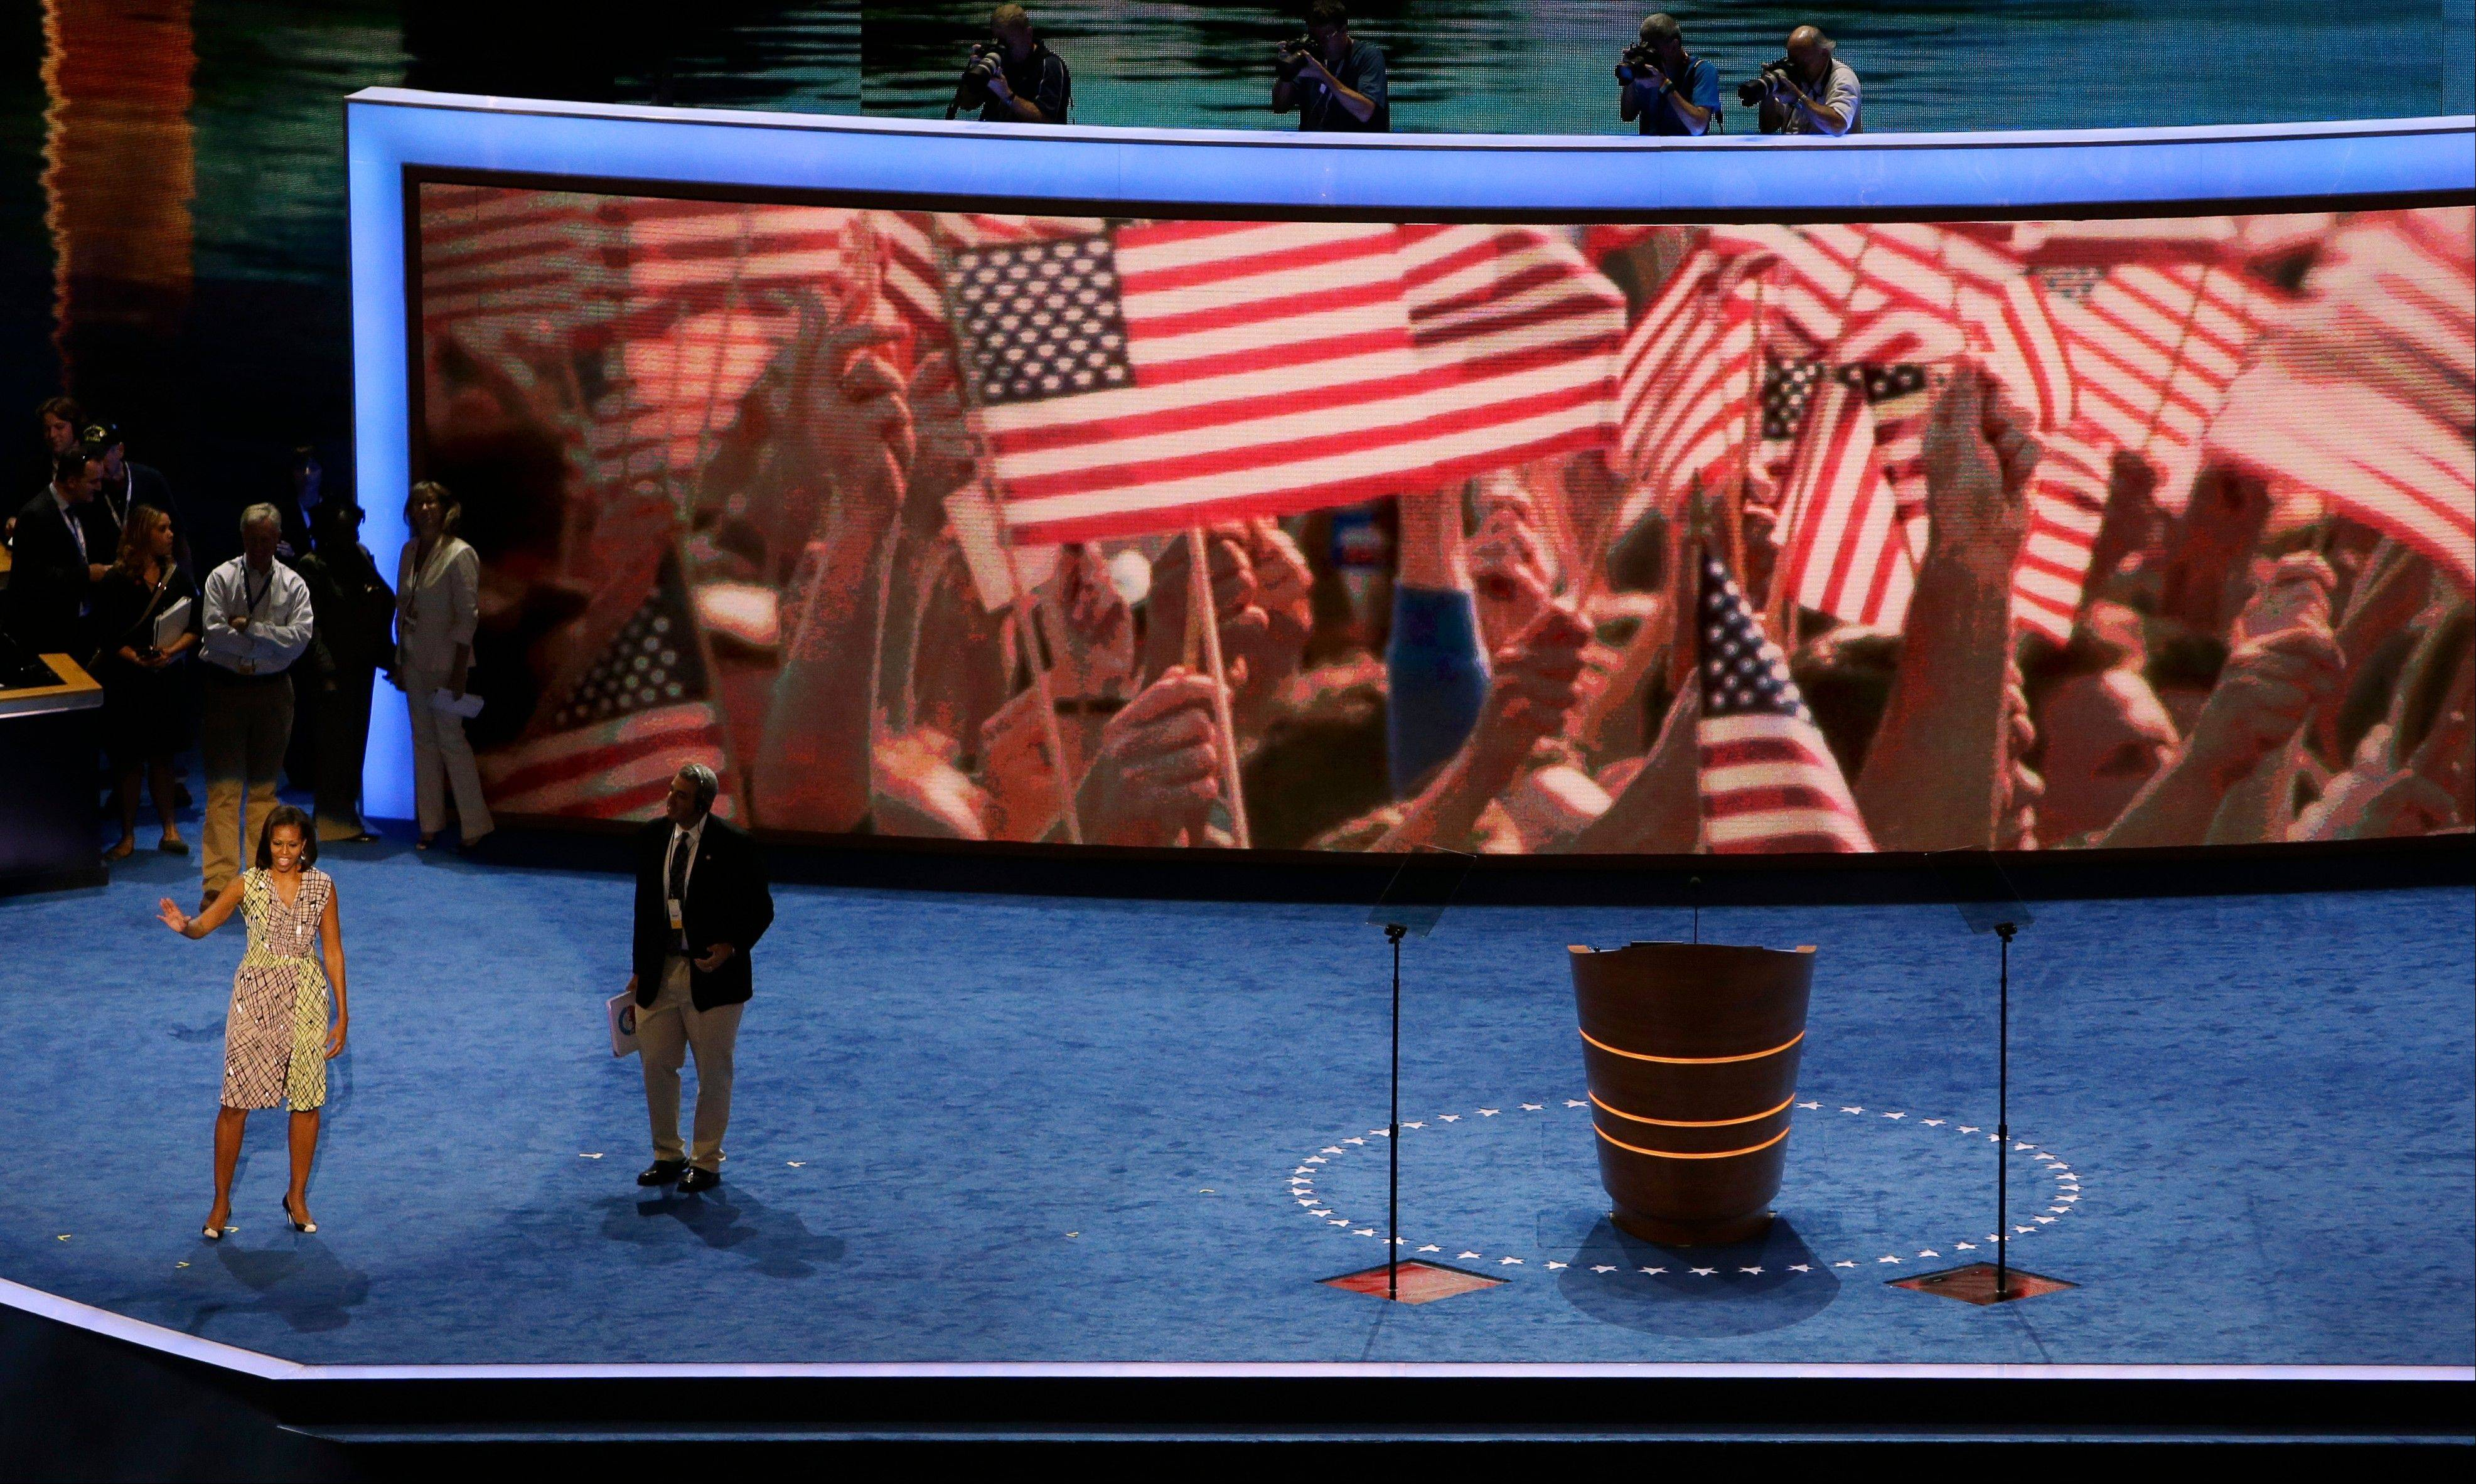 First lady Michelle Obama waves to volunteers during a sound check for the Democratic National Convention in Charlotte, N.C.